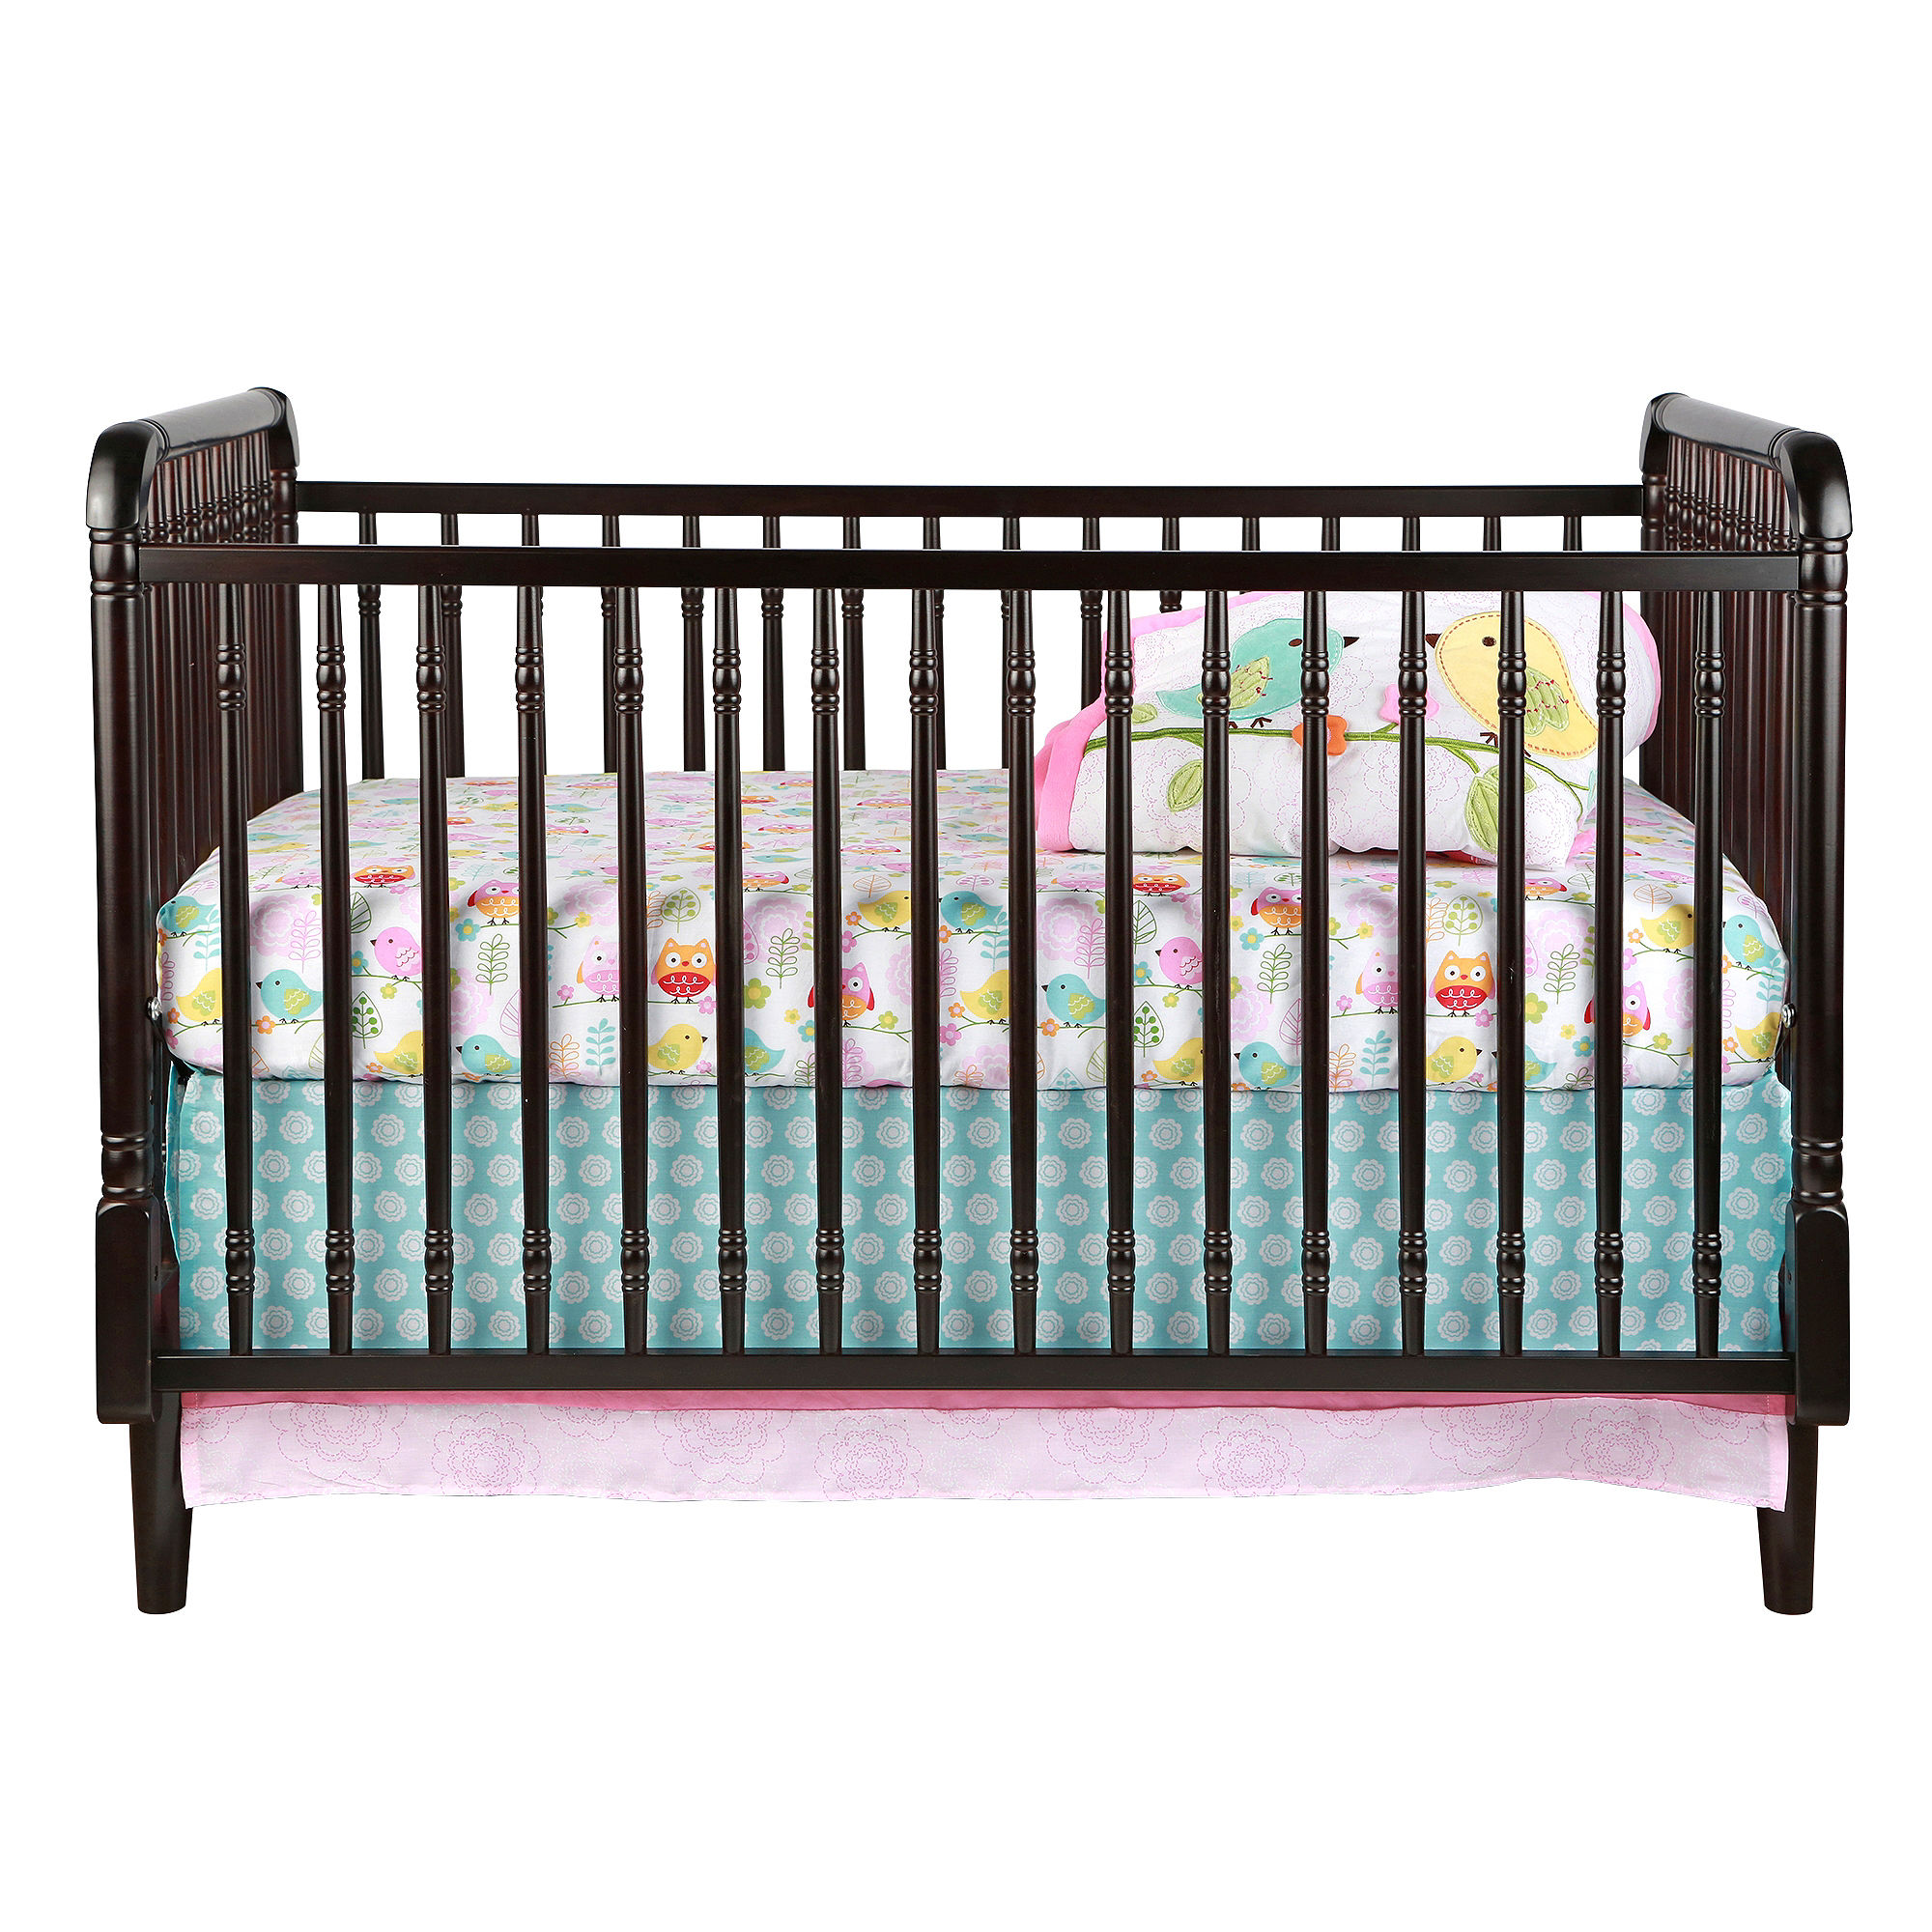 Evenflo jenny lind crib replacement parts grosir baju - Jenny lind replacement parts ...